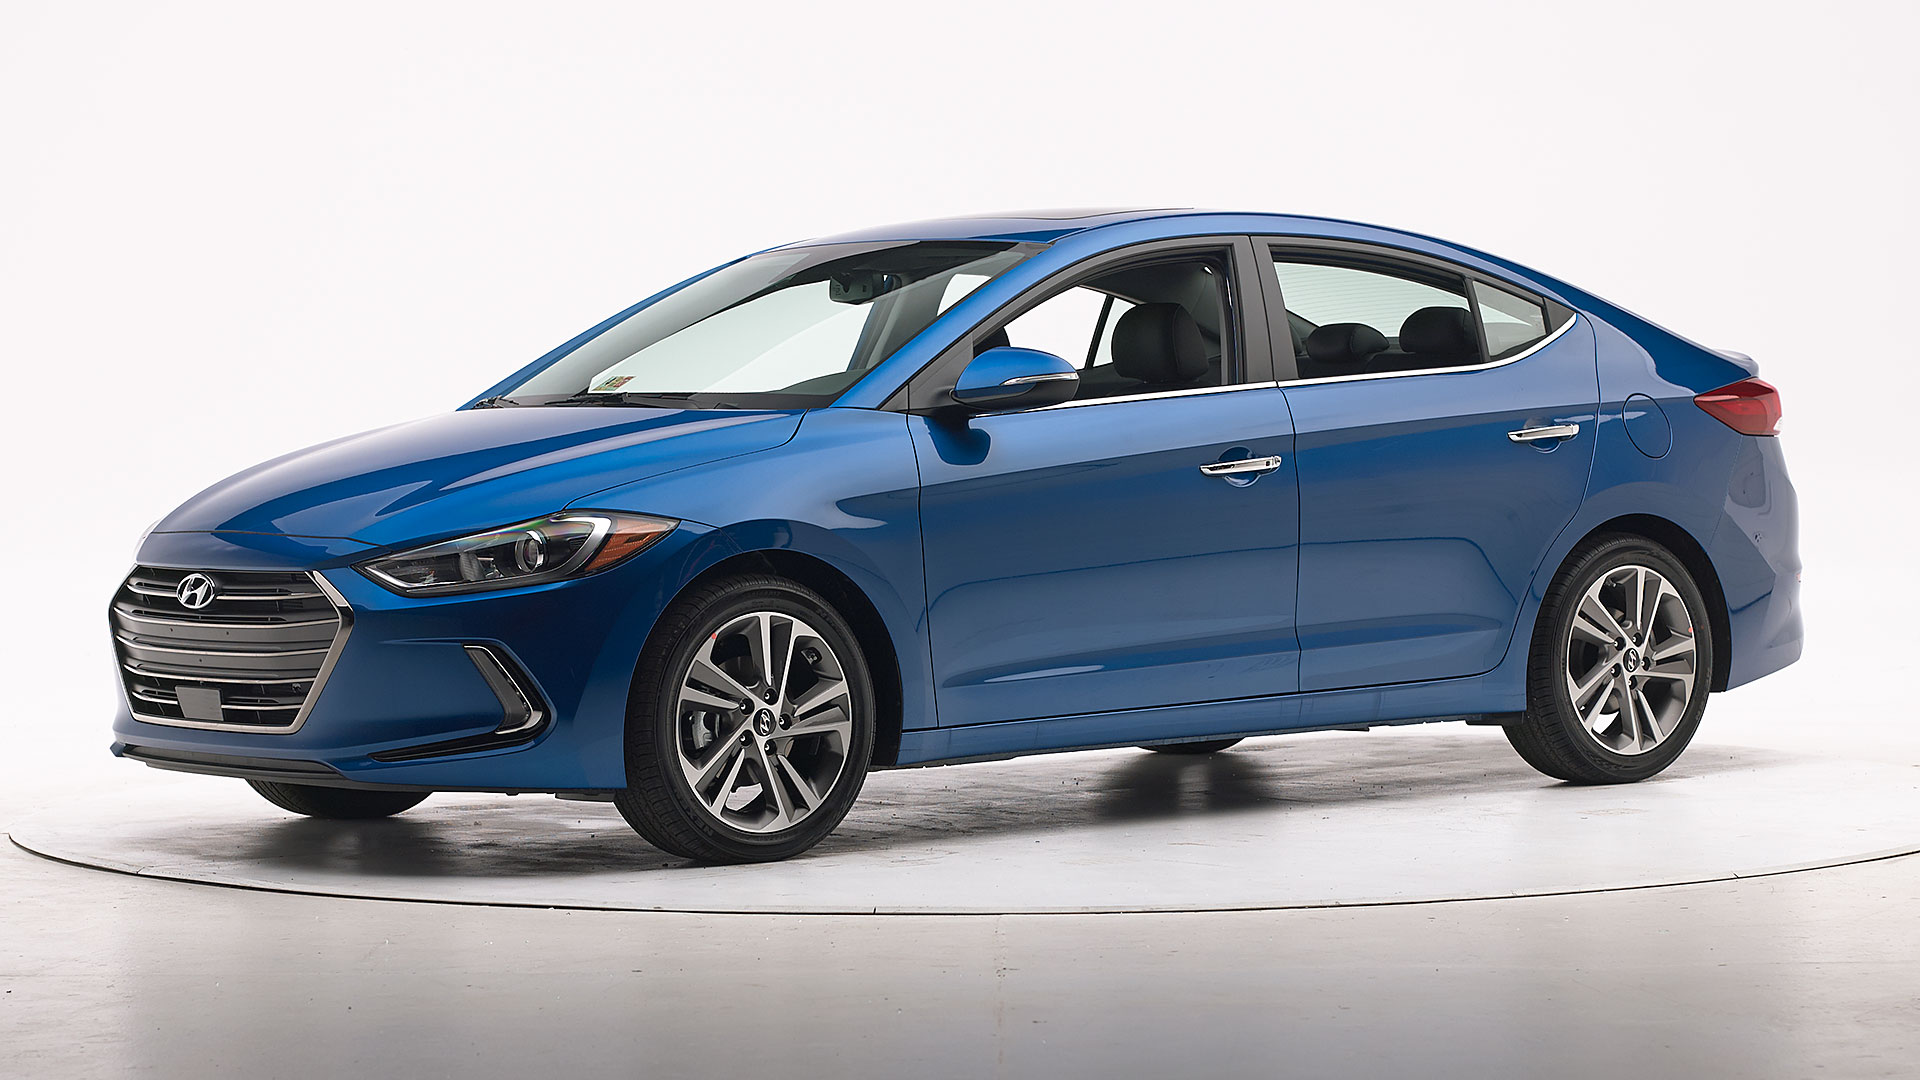 2017 Hyundai Elantra 4-door sedan